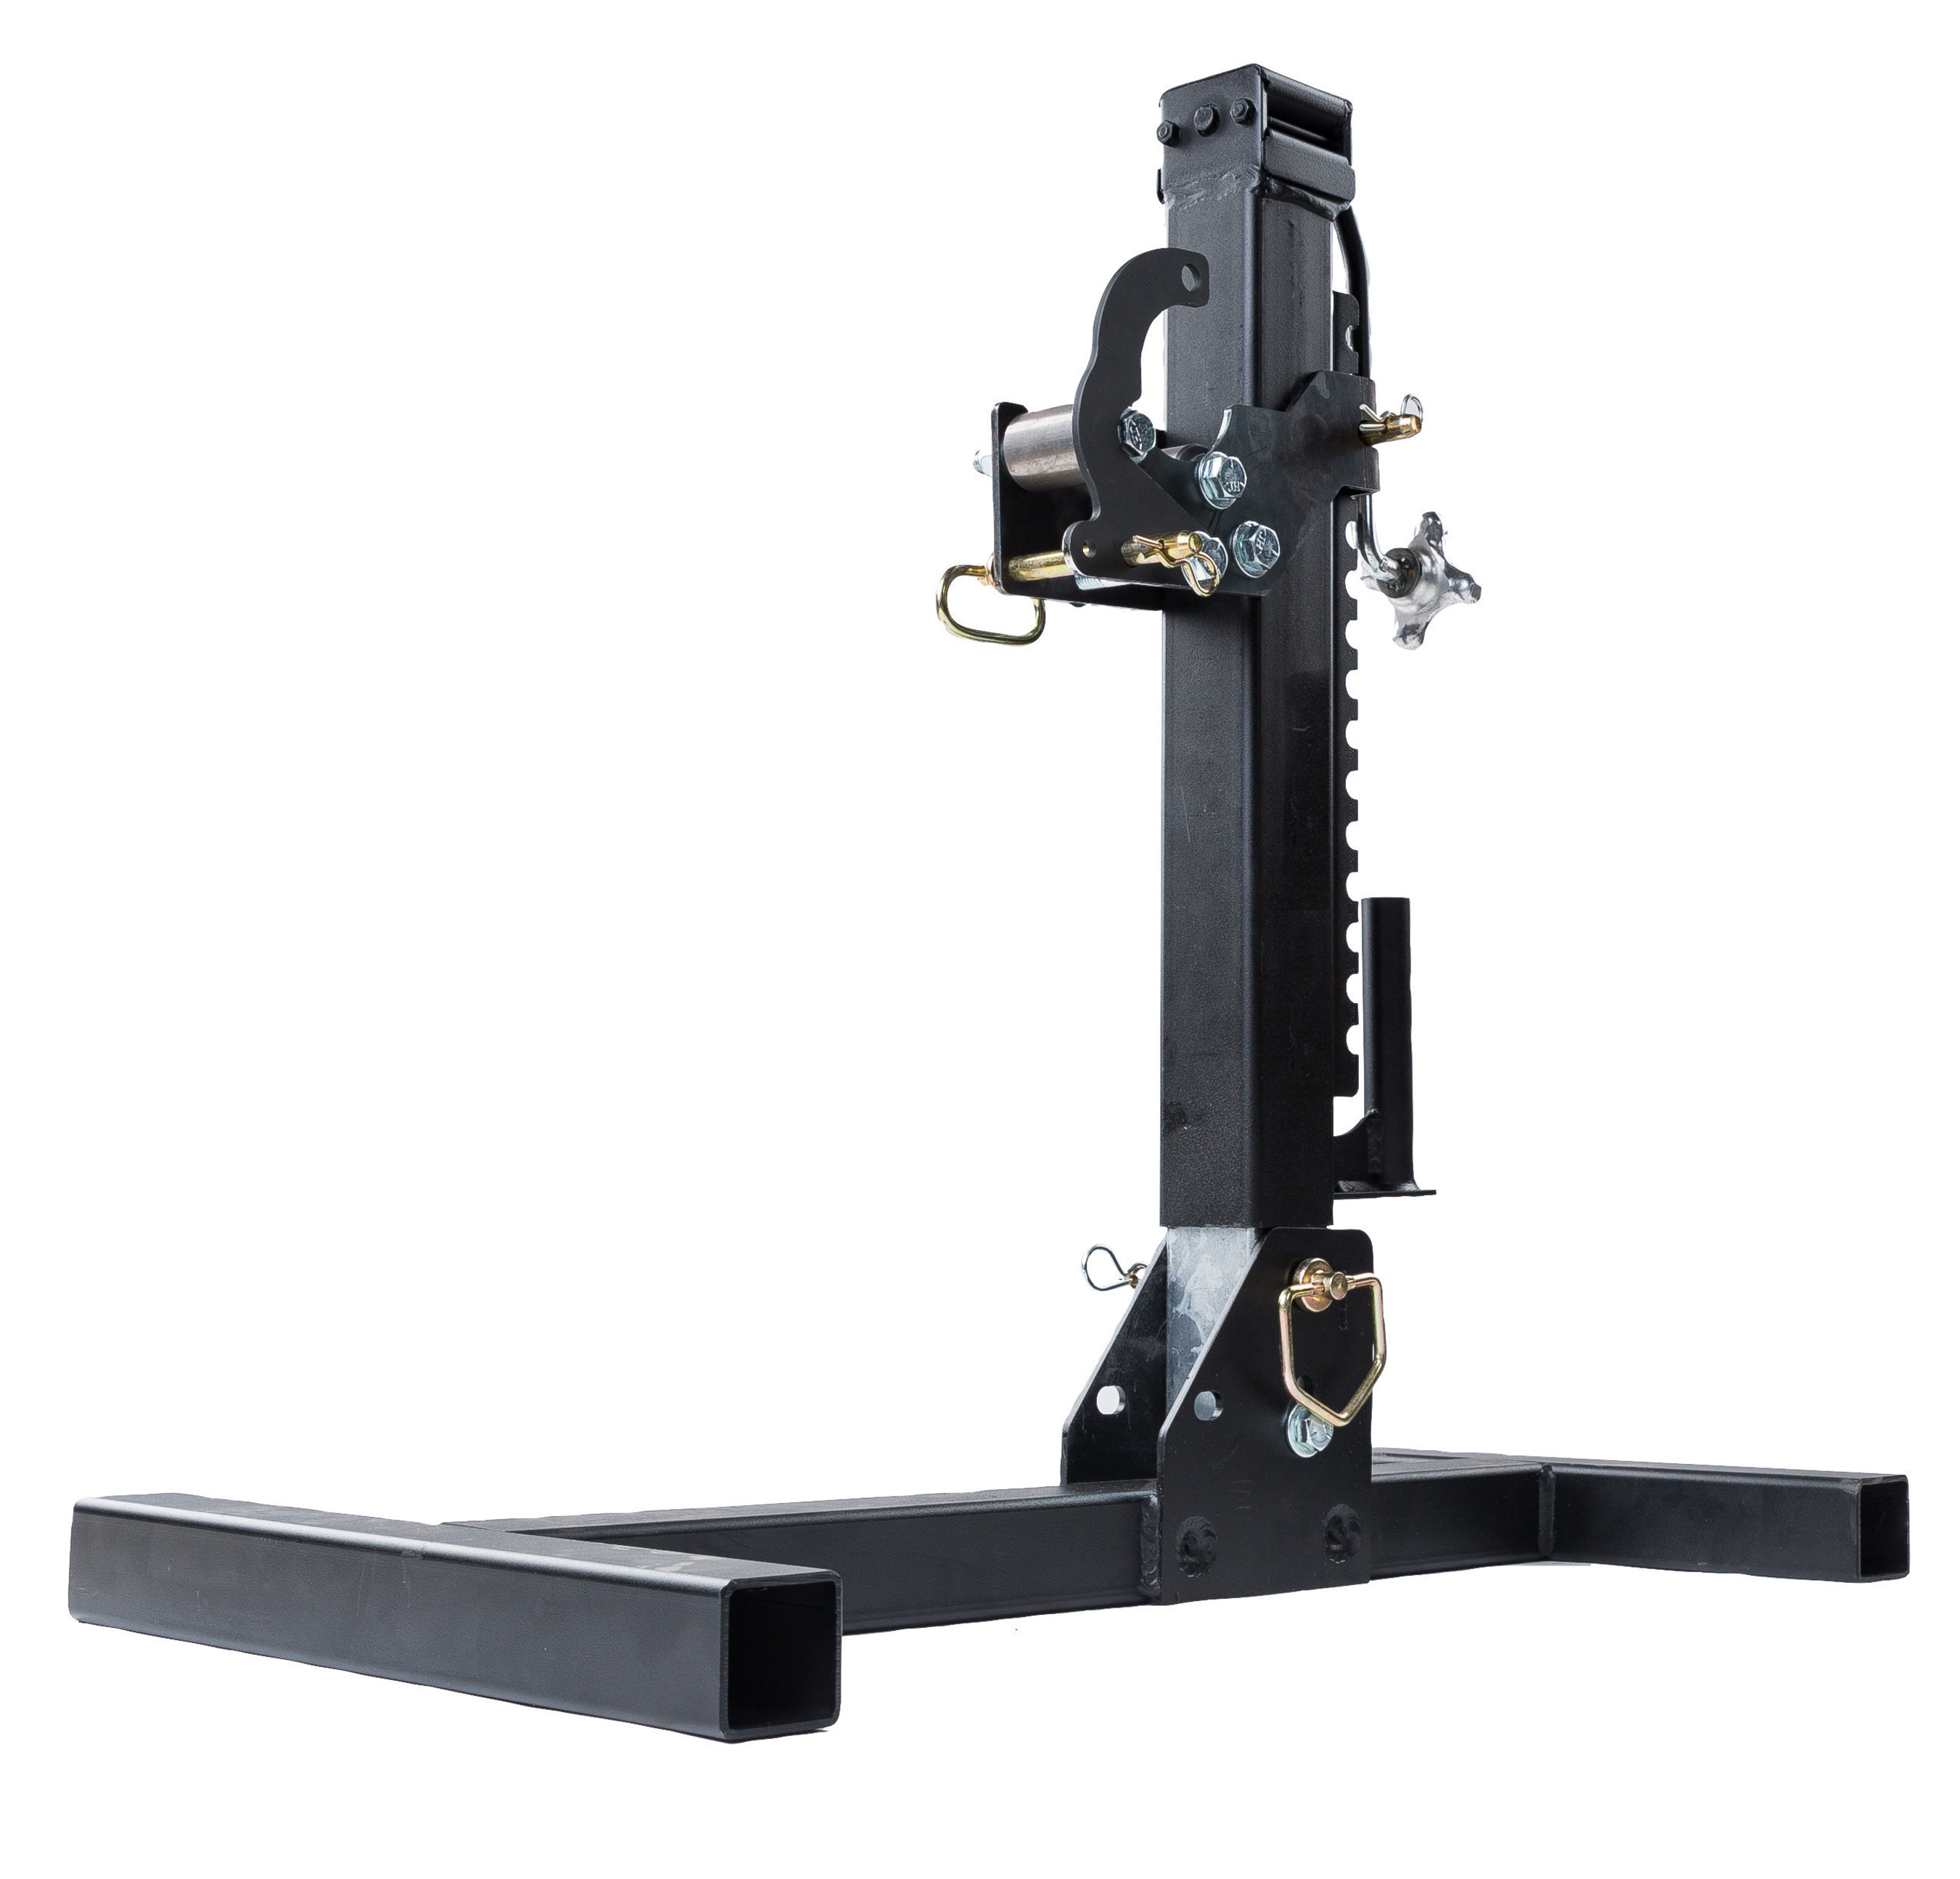 Southwire Introduces QWIKjax™ Reel Stands